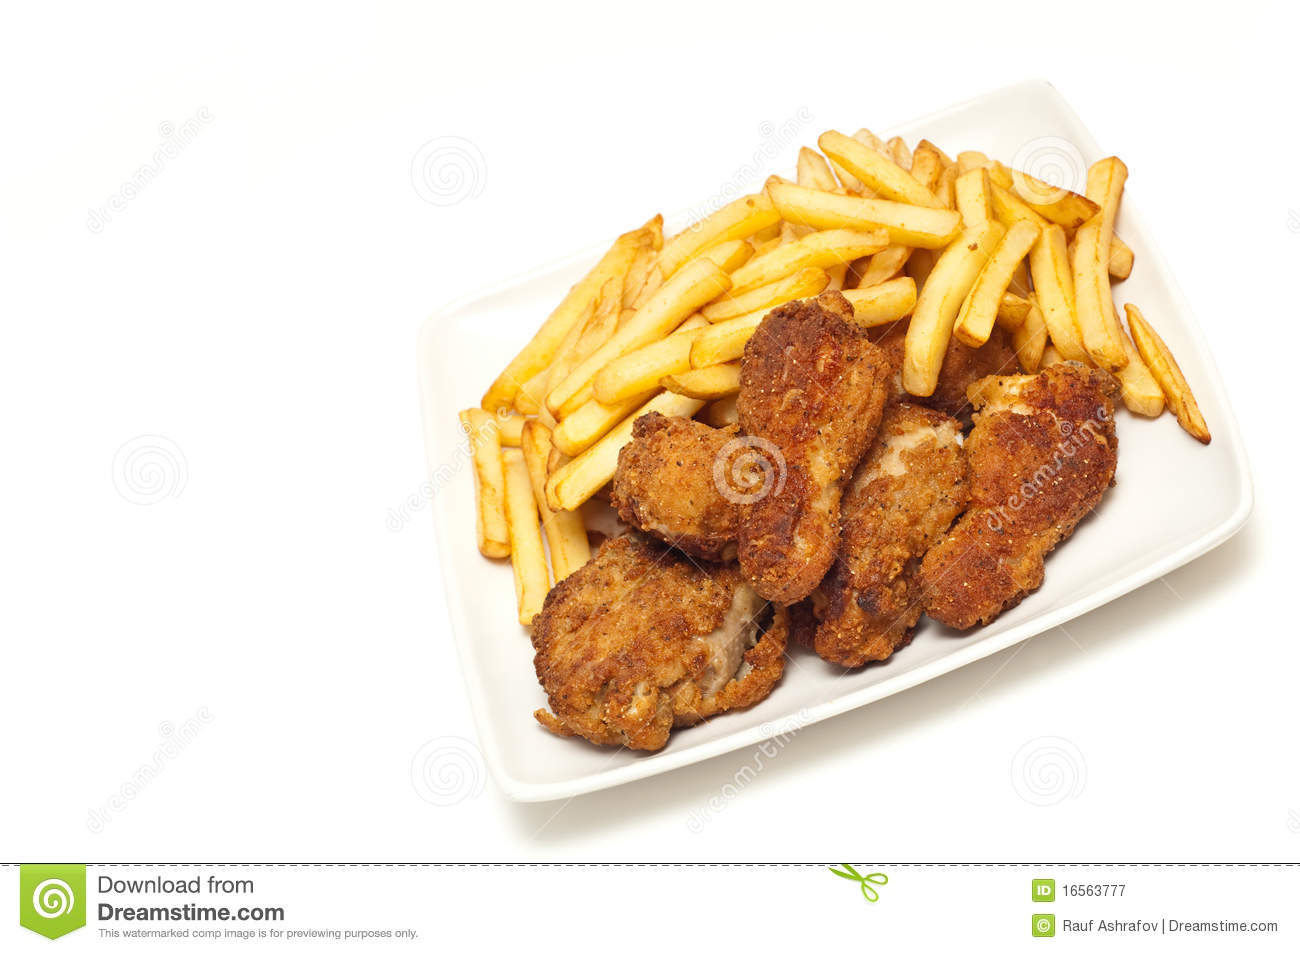 Golden brown fried chicken served with fries